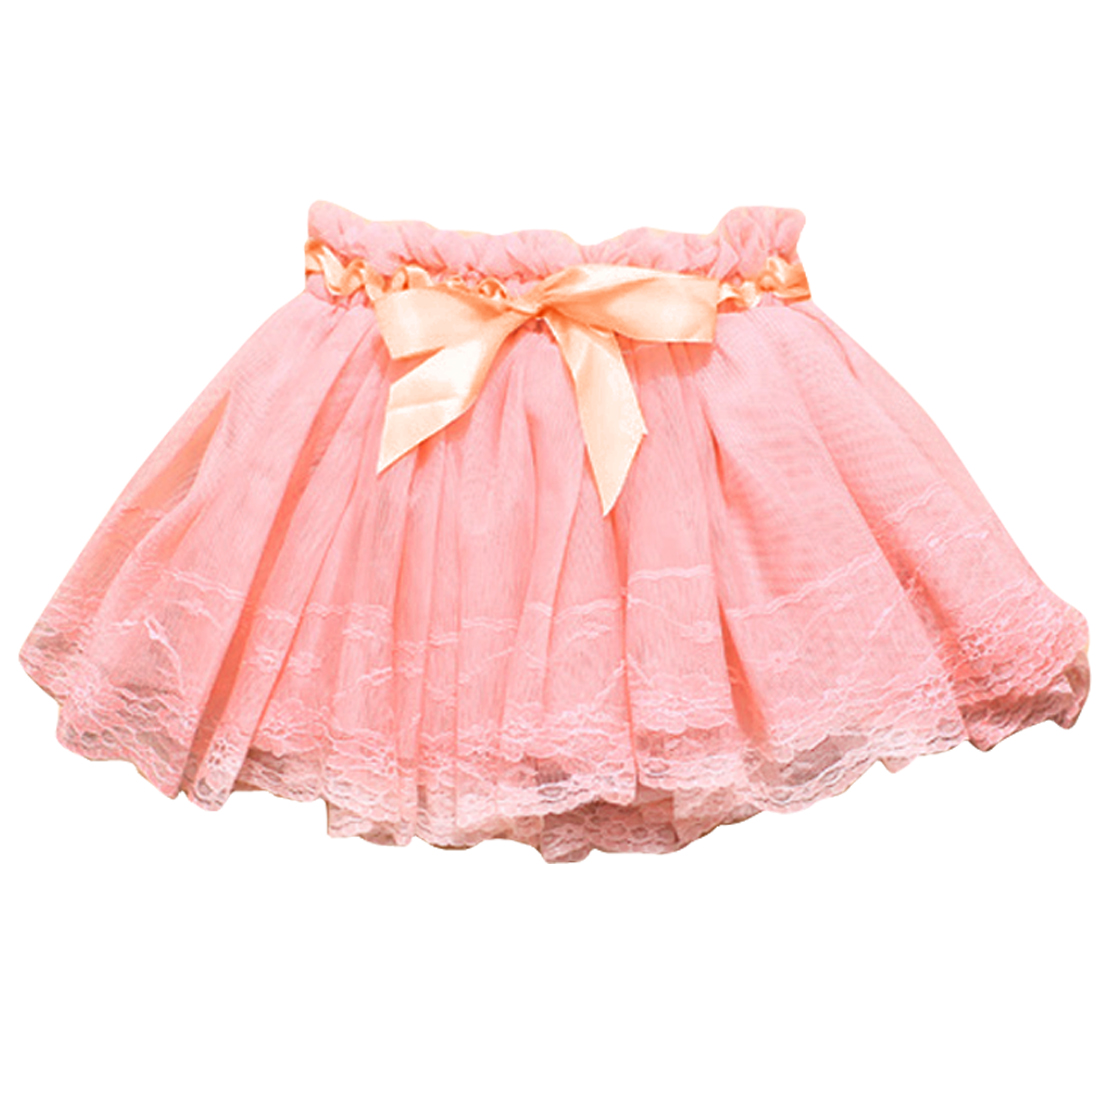 Girls Elastic Waist Solid Color Round Hem Elagant Skirt Pink 4